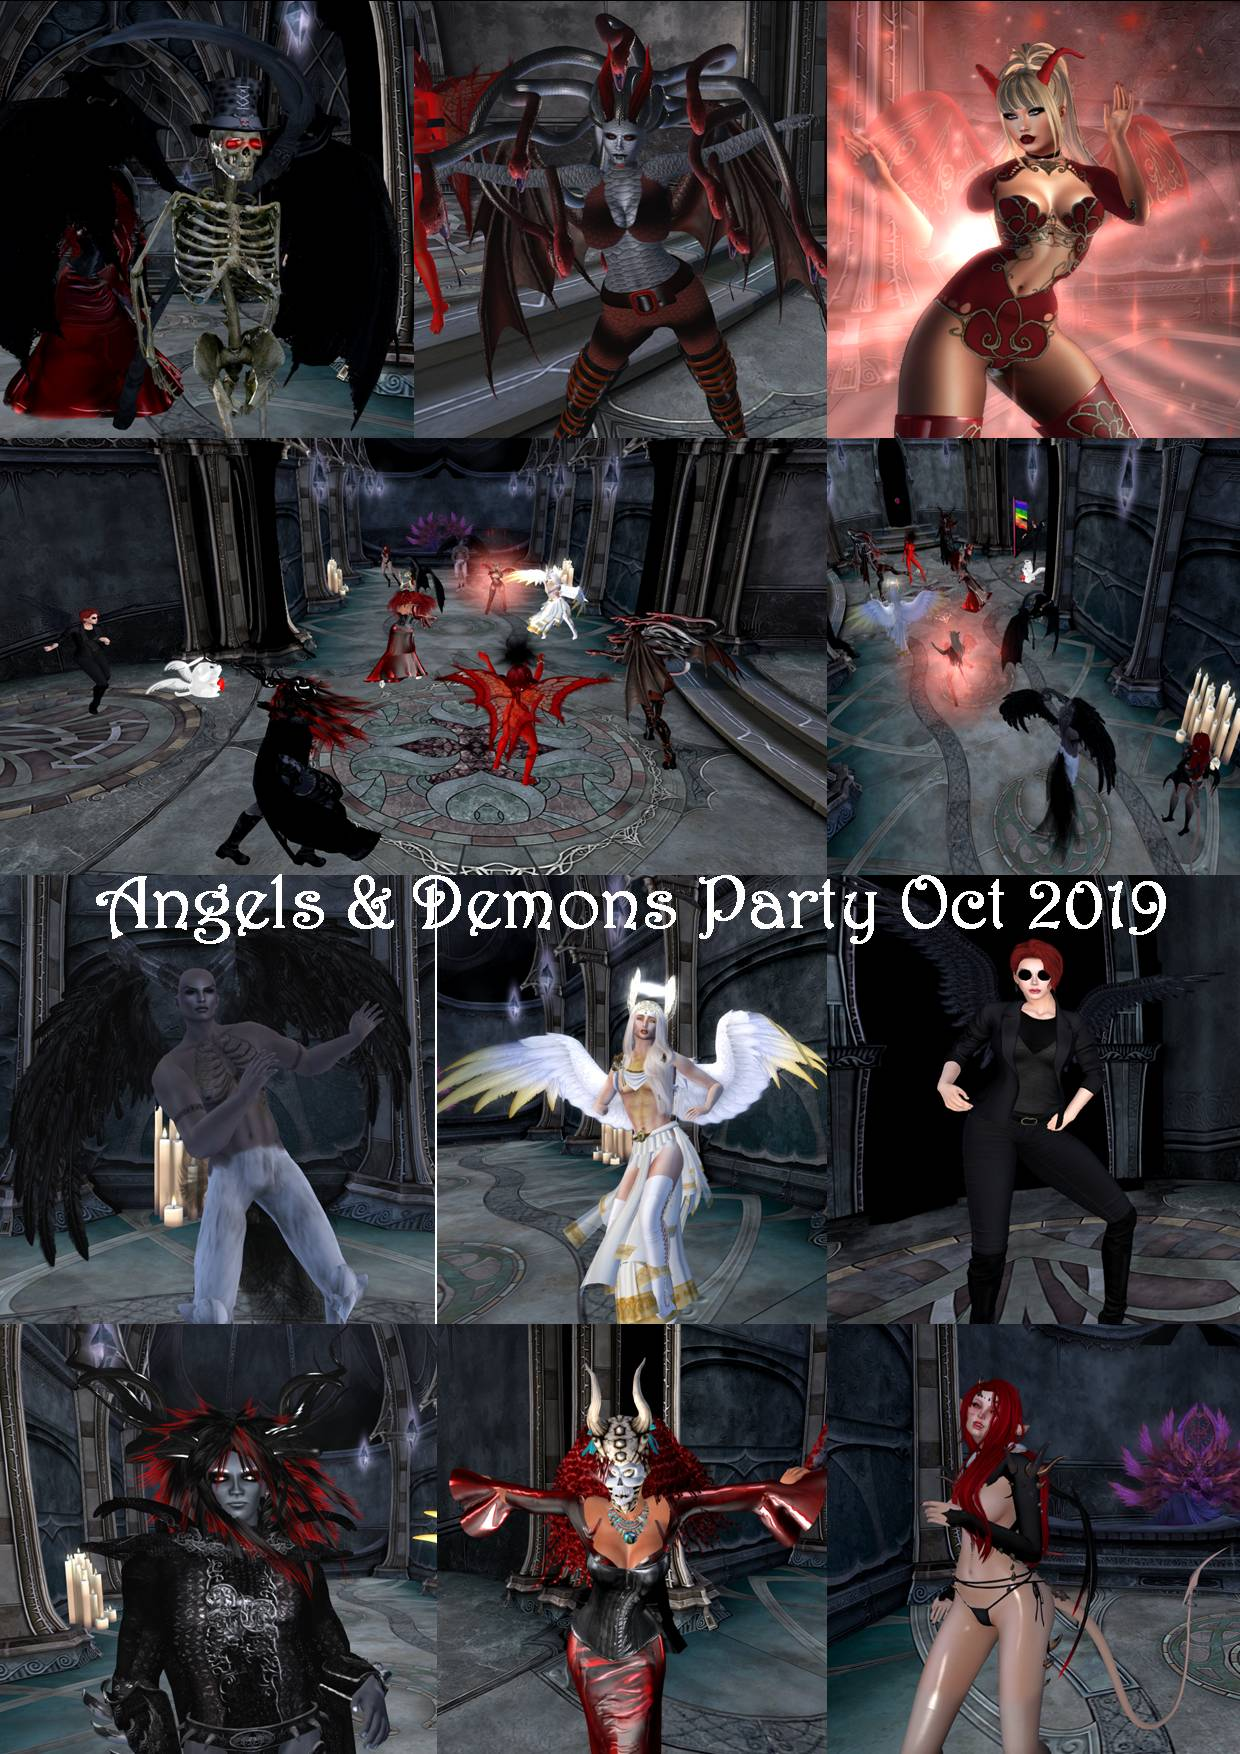 ANGELS & DEMONS PARTY COLLAGE OCT 2019